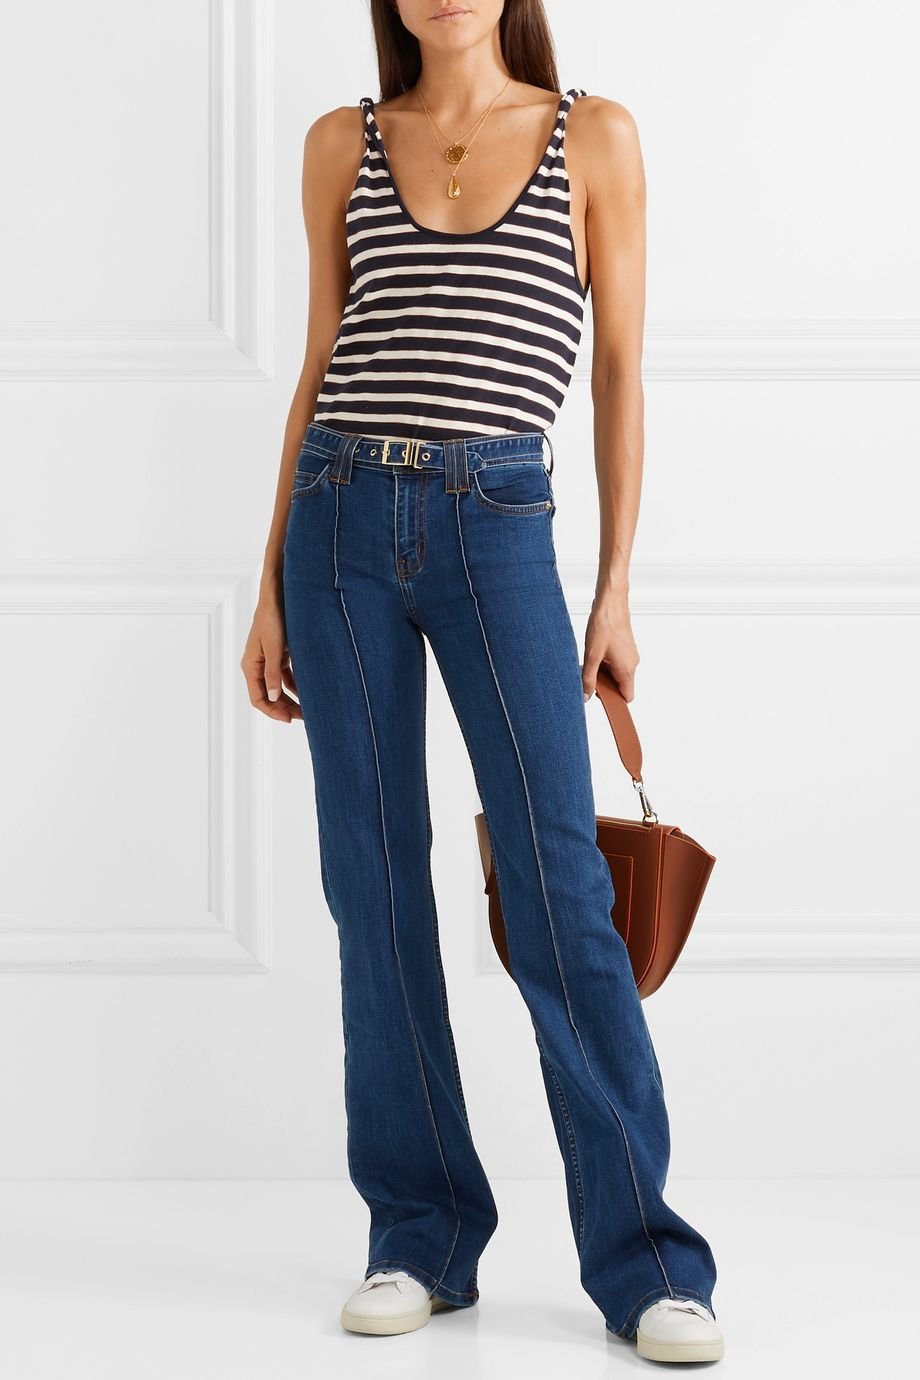 Current/Elliott The Admirer belted high-rise flared jeans